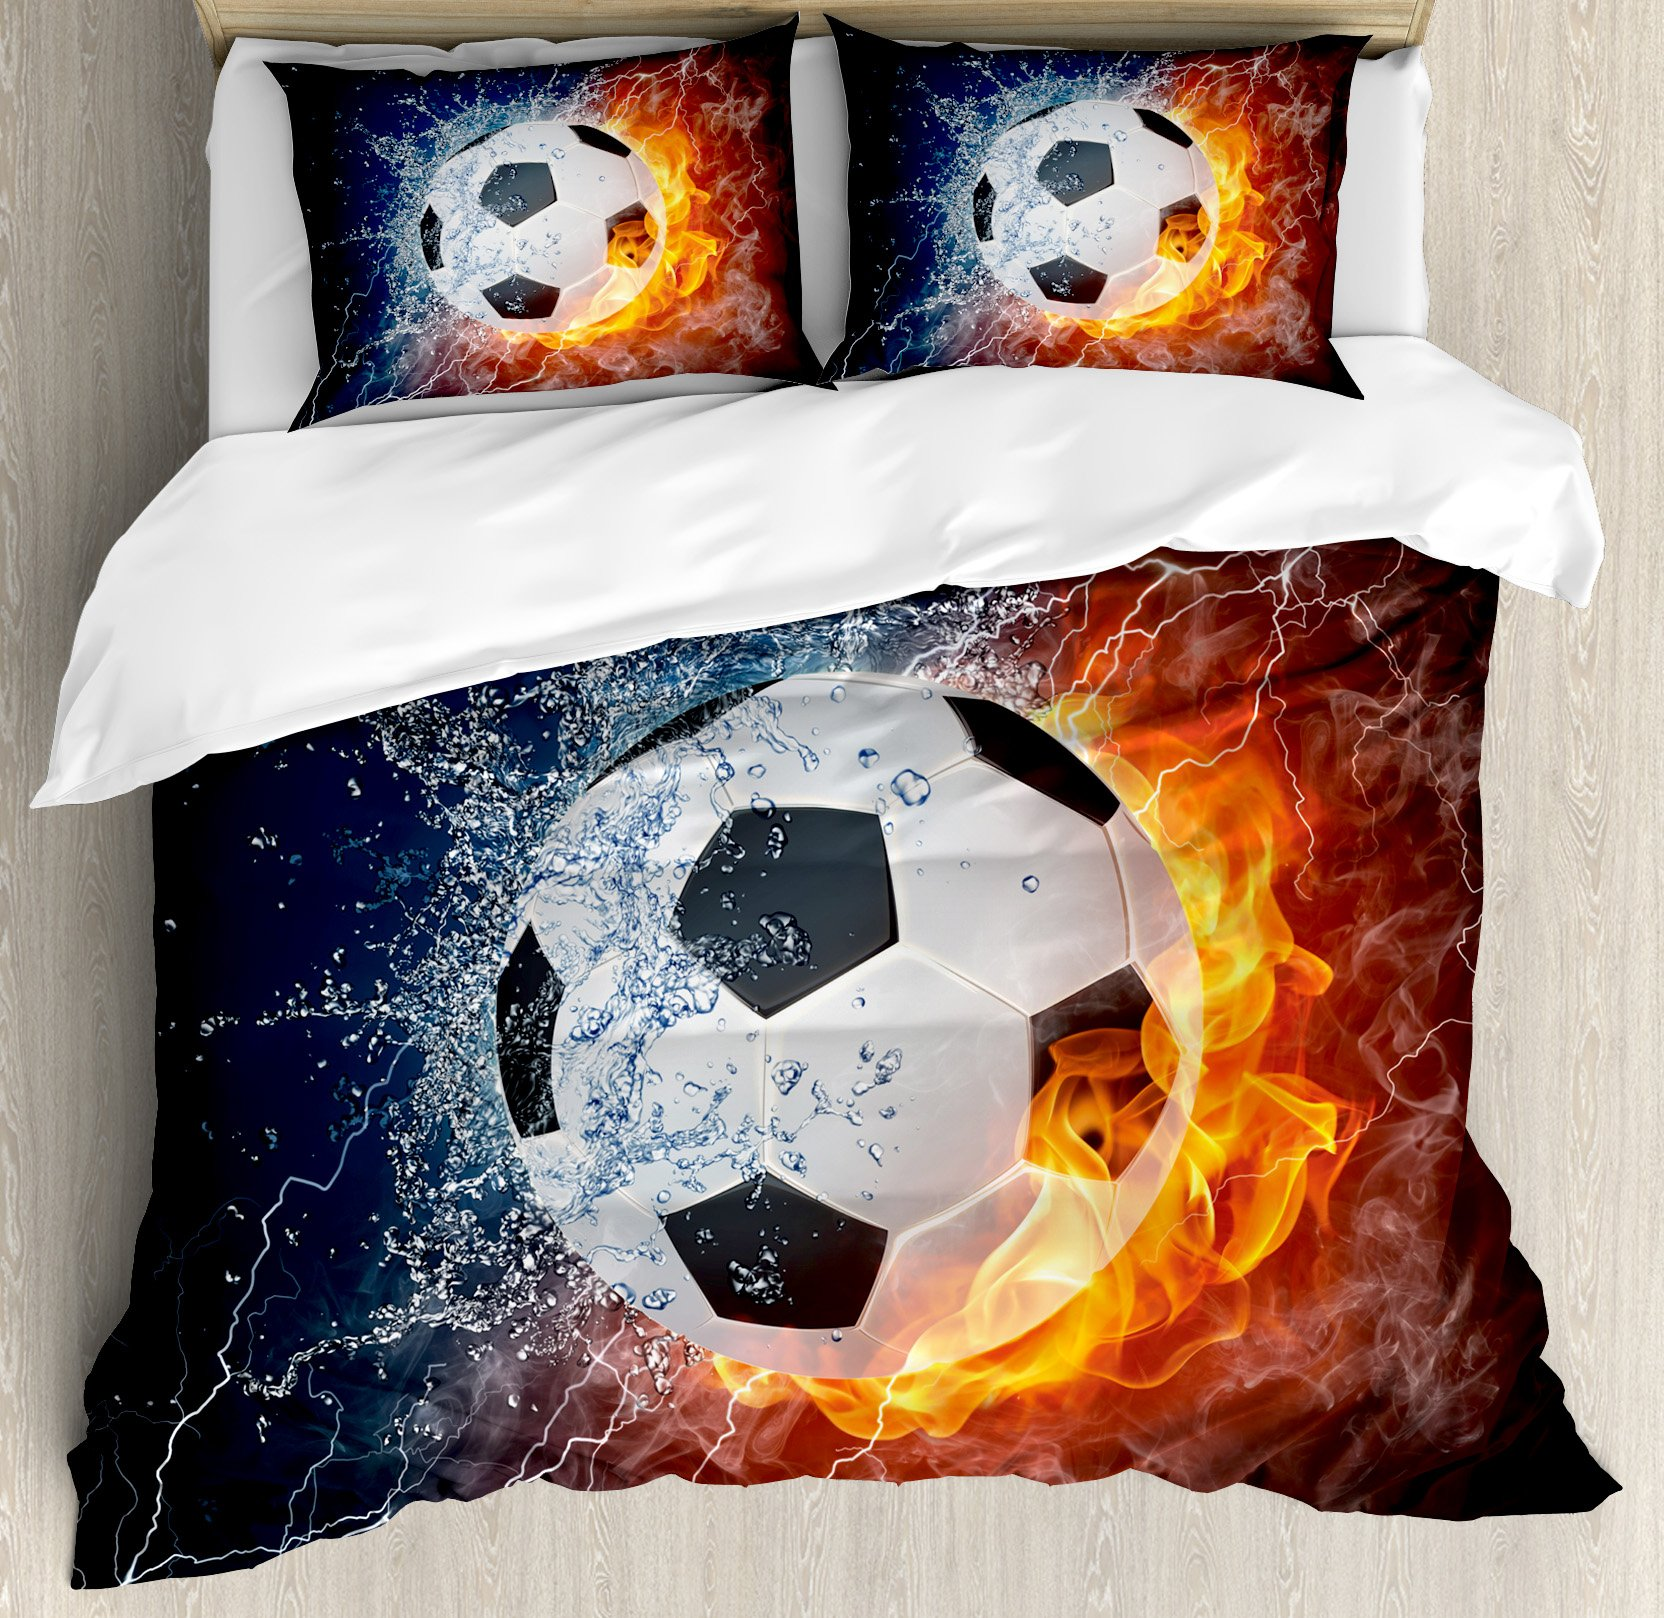 Sports Decor King Size Duvet Cover Set by Ambesonne, Soccer Ball on Fire and Water Flame Splashing Thunder Lightning Abstract, Decorative 3 Piece Bedding Set with 2 Pillow Shams